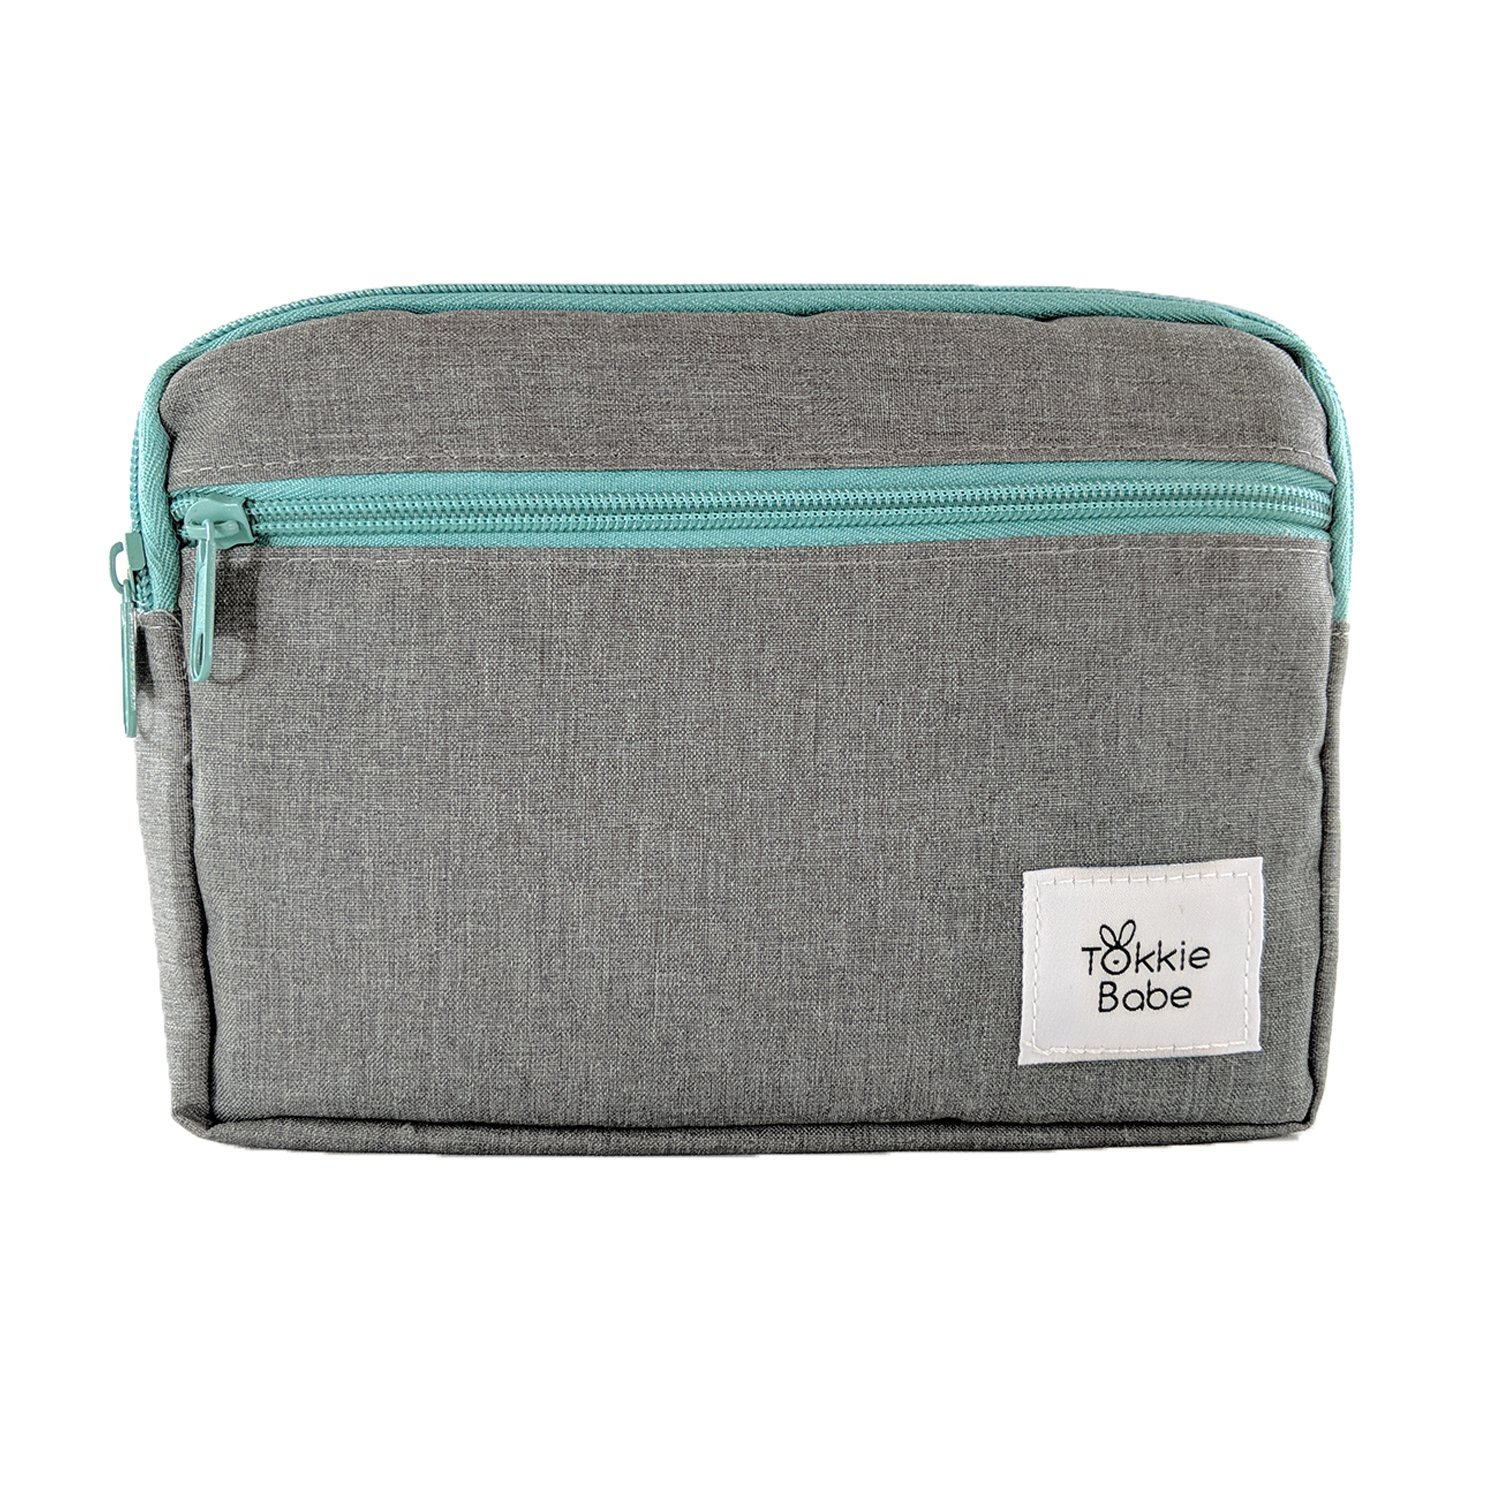 TOKKIE BABE Baby Carrier Extension Storage Pouch - Fit All Essentials for Diapers, Changing Pad, Wipes, Pacifiers, Smart Phones and Wallets Compatible with Ergobaby, Lillebaby, Tula and more TB-1000